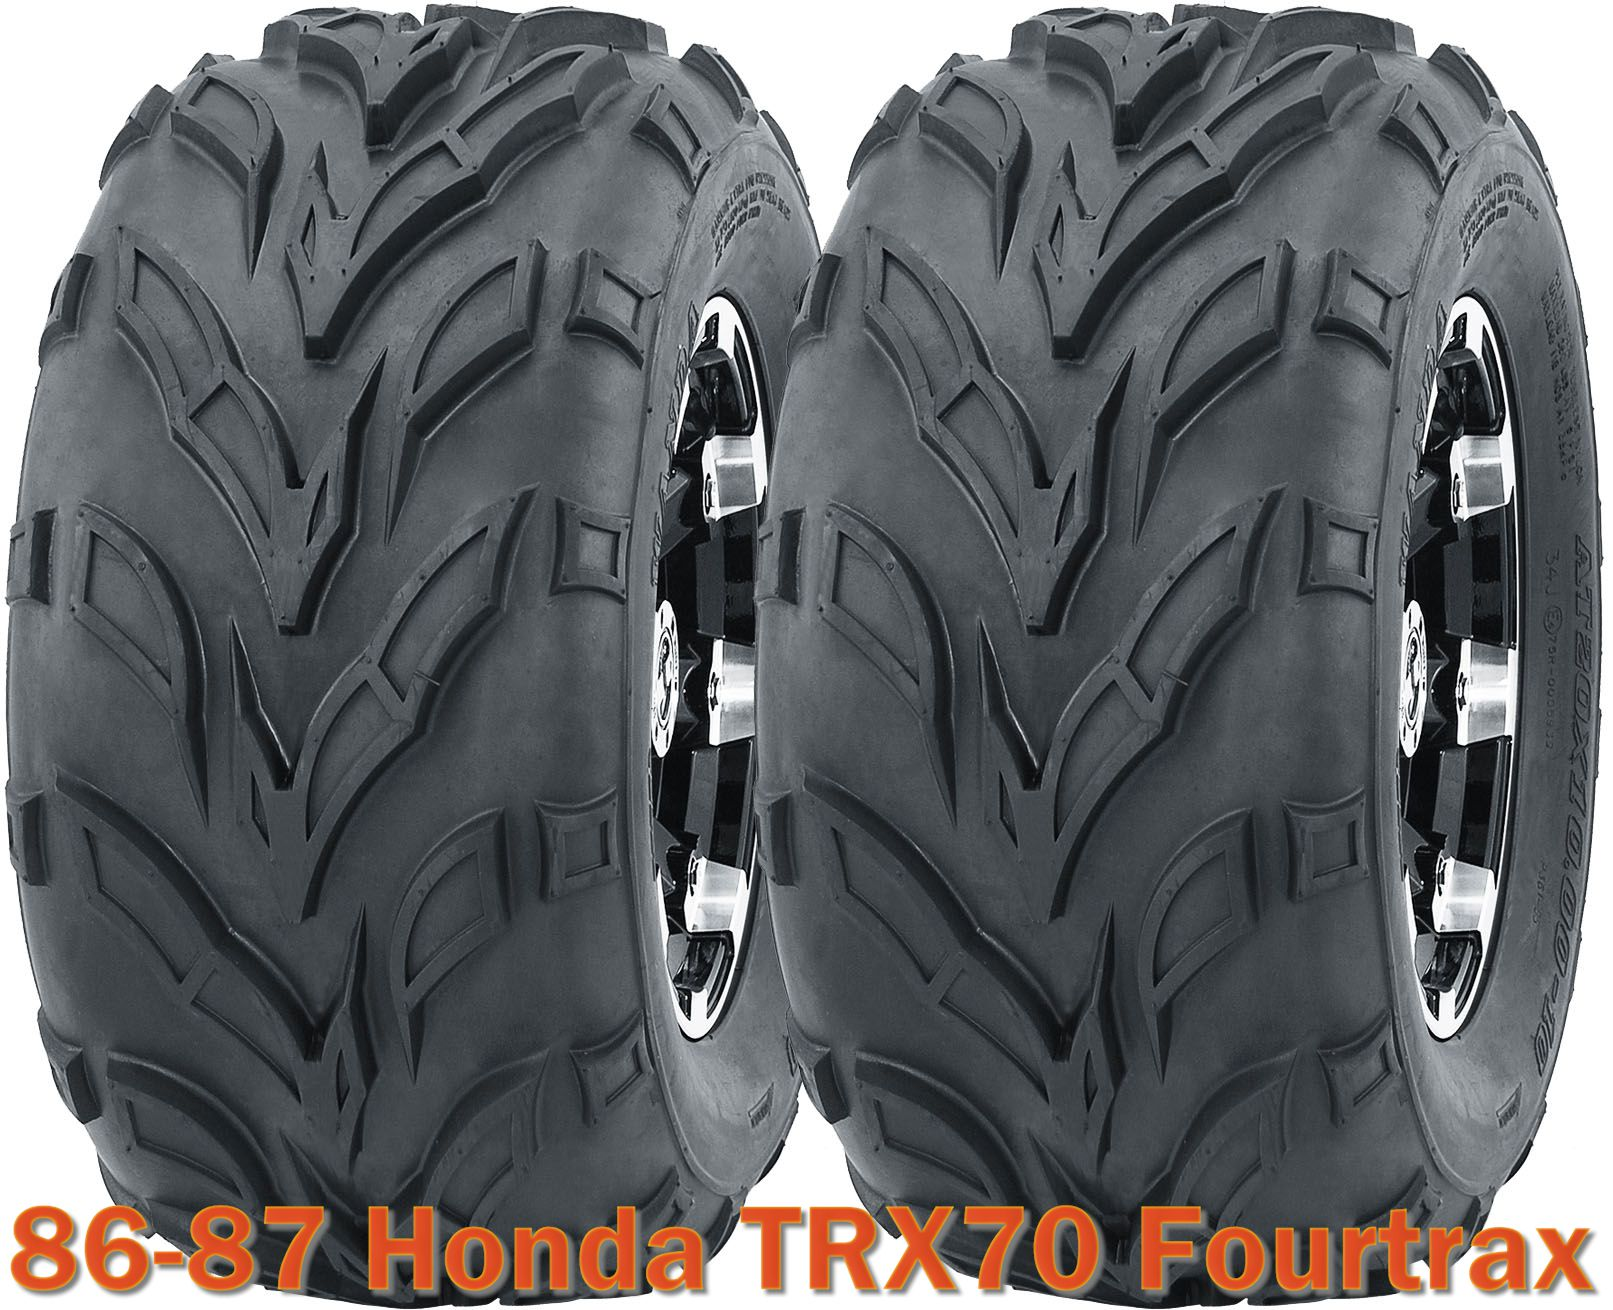 4 16x8-7 WANDA ATV tires set for 1986-1987 Honda TRX70 Fourtrax